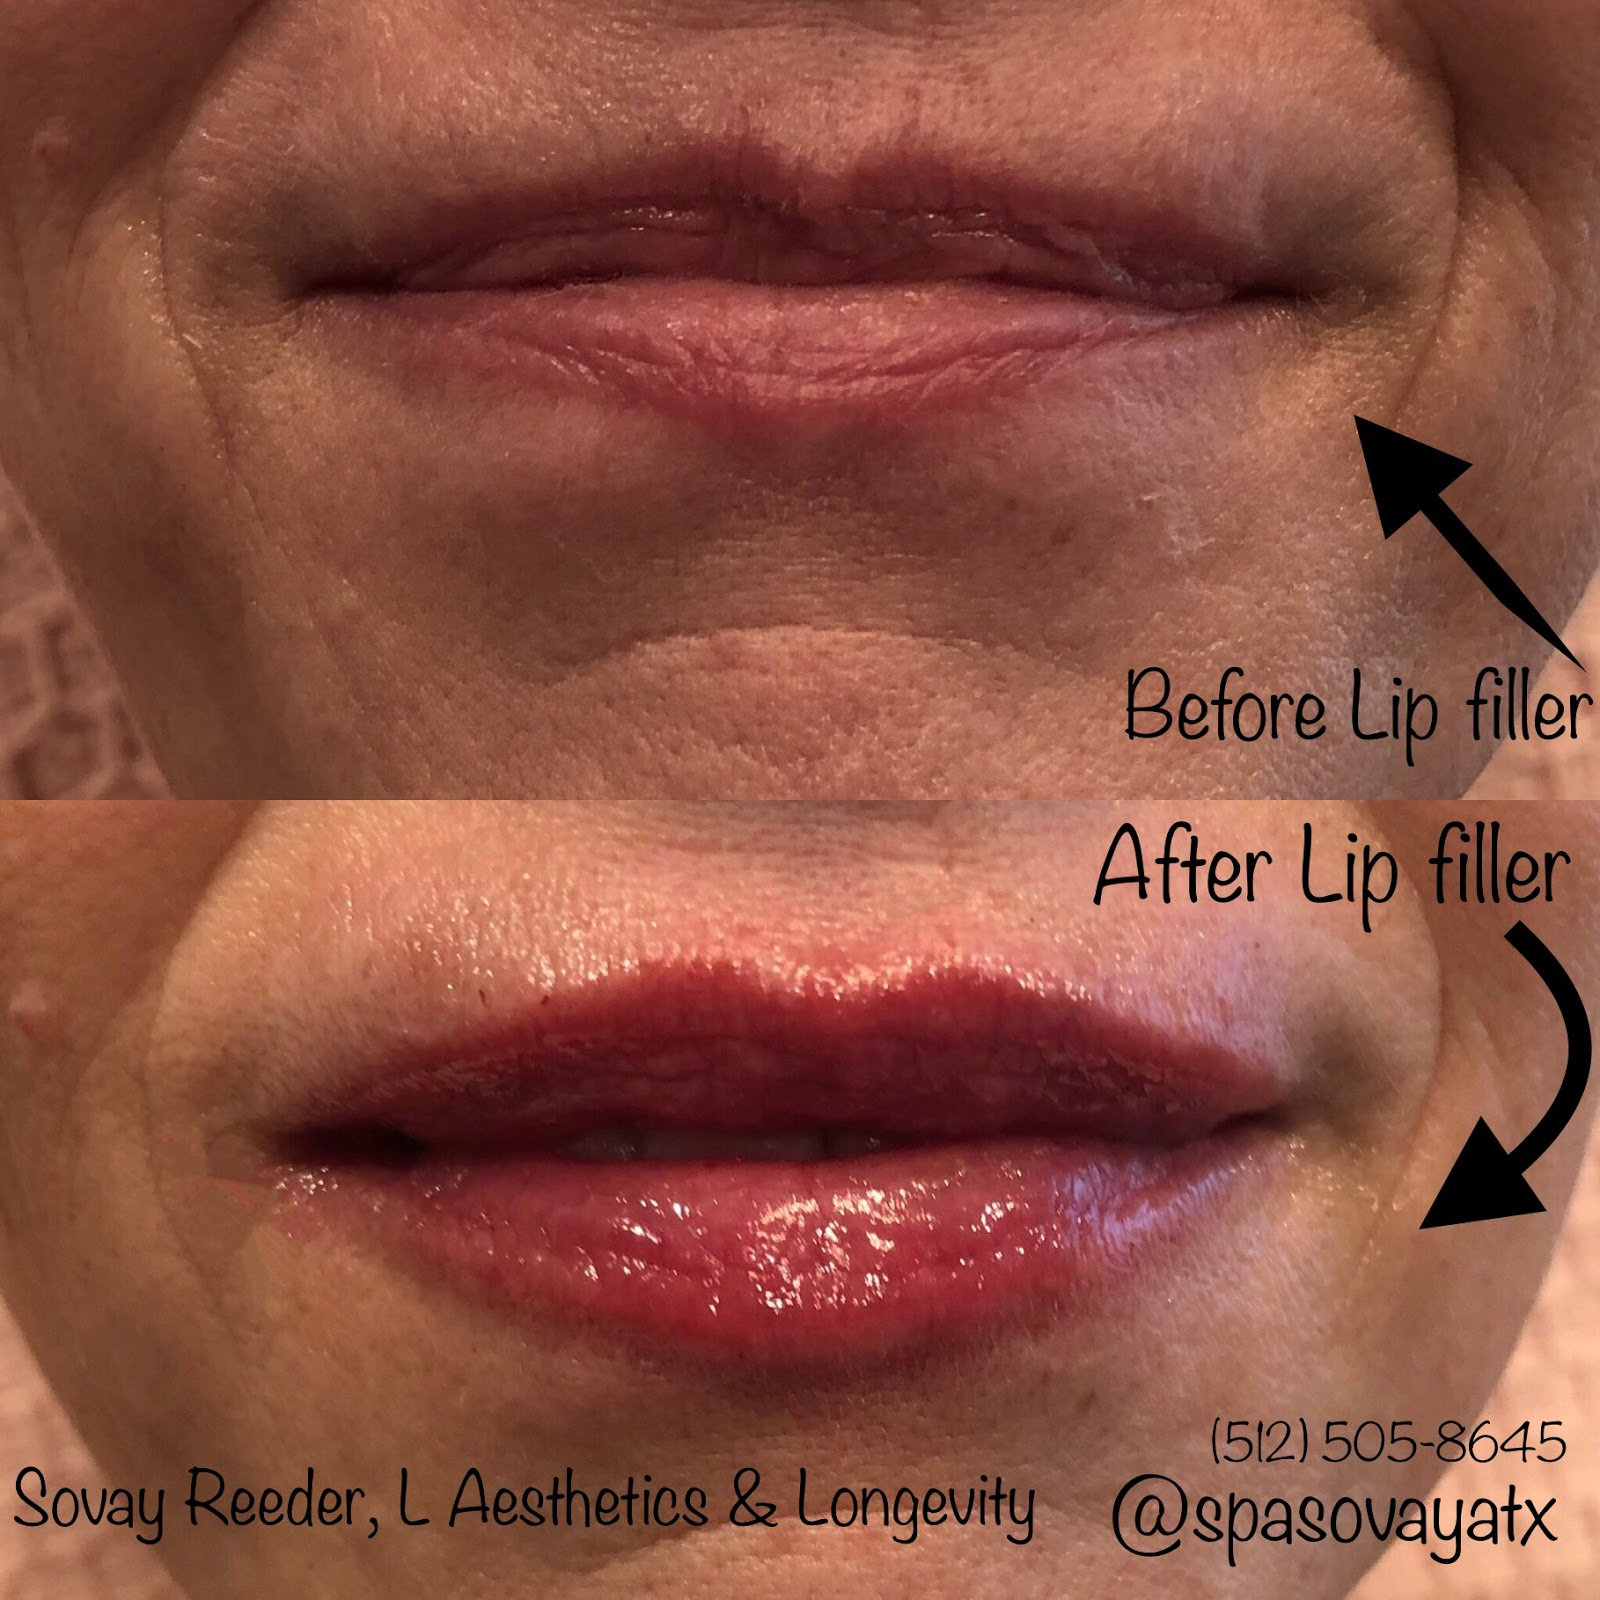 Professional Primp Lip Natural Filler In Austin Medical Injector Sovay Reeder